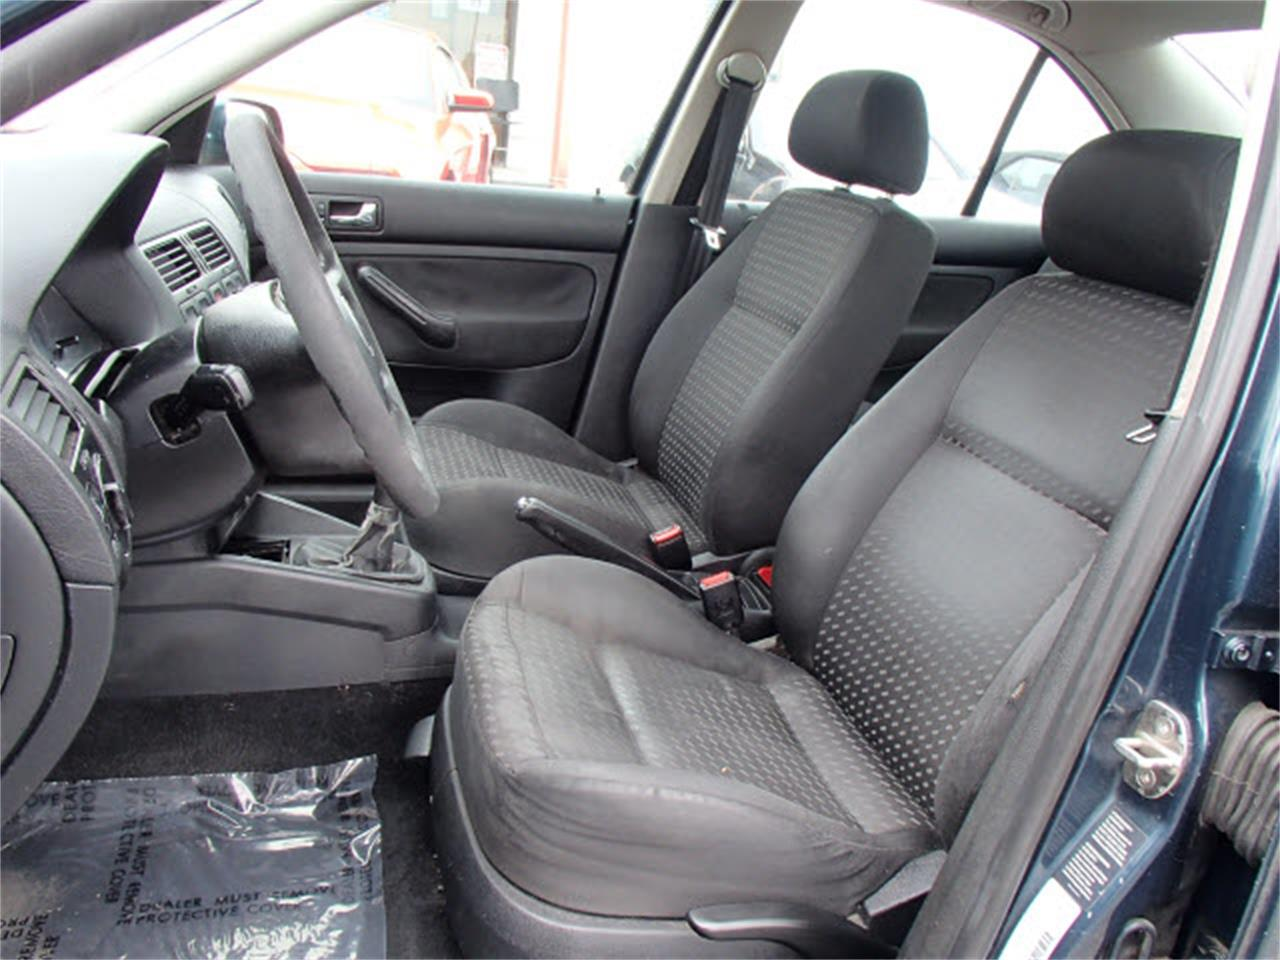 2001 Volkswagen Jetta For Sale Cc 1094633 Sedan Large Picture Of 249900 Offered By Sabeti Motors Ngmh